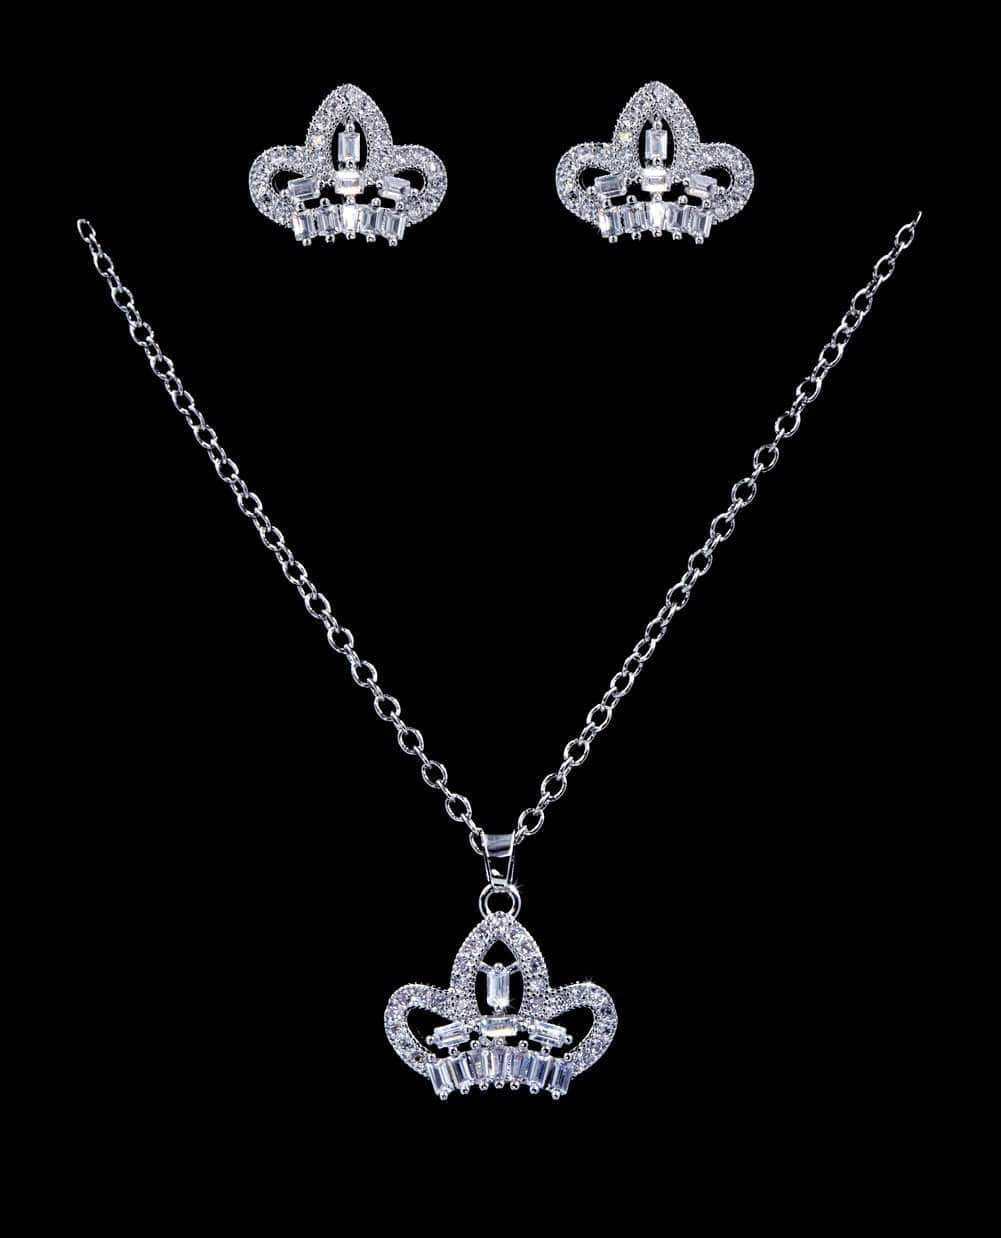 Necklace Sets - Low price #16818 - CZ Crown Necklace and Earring Set